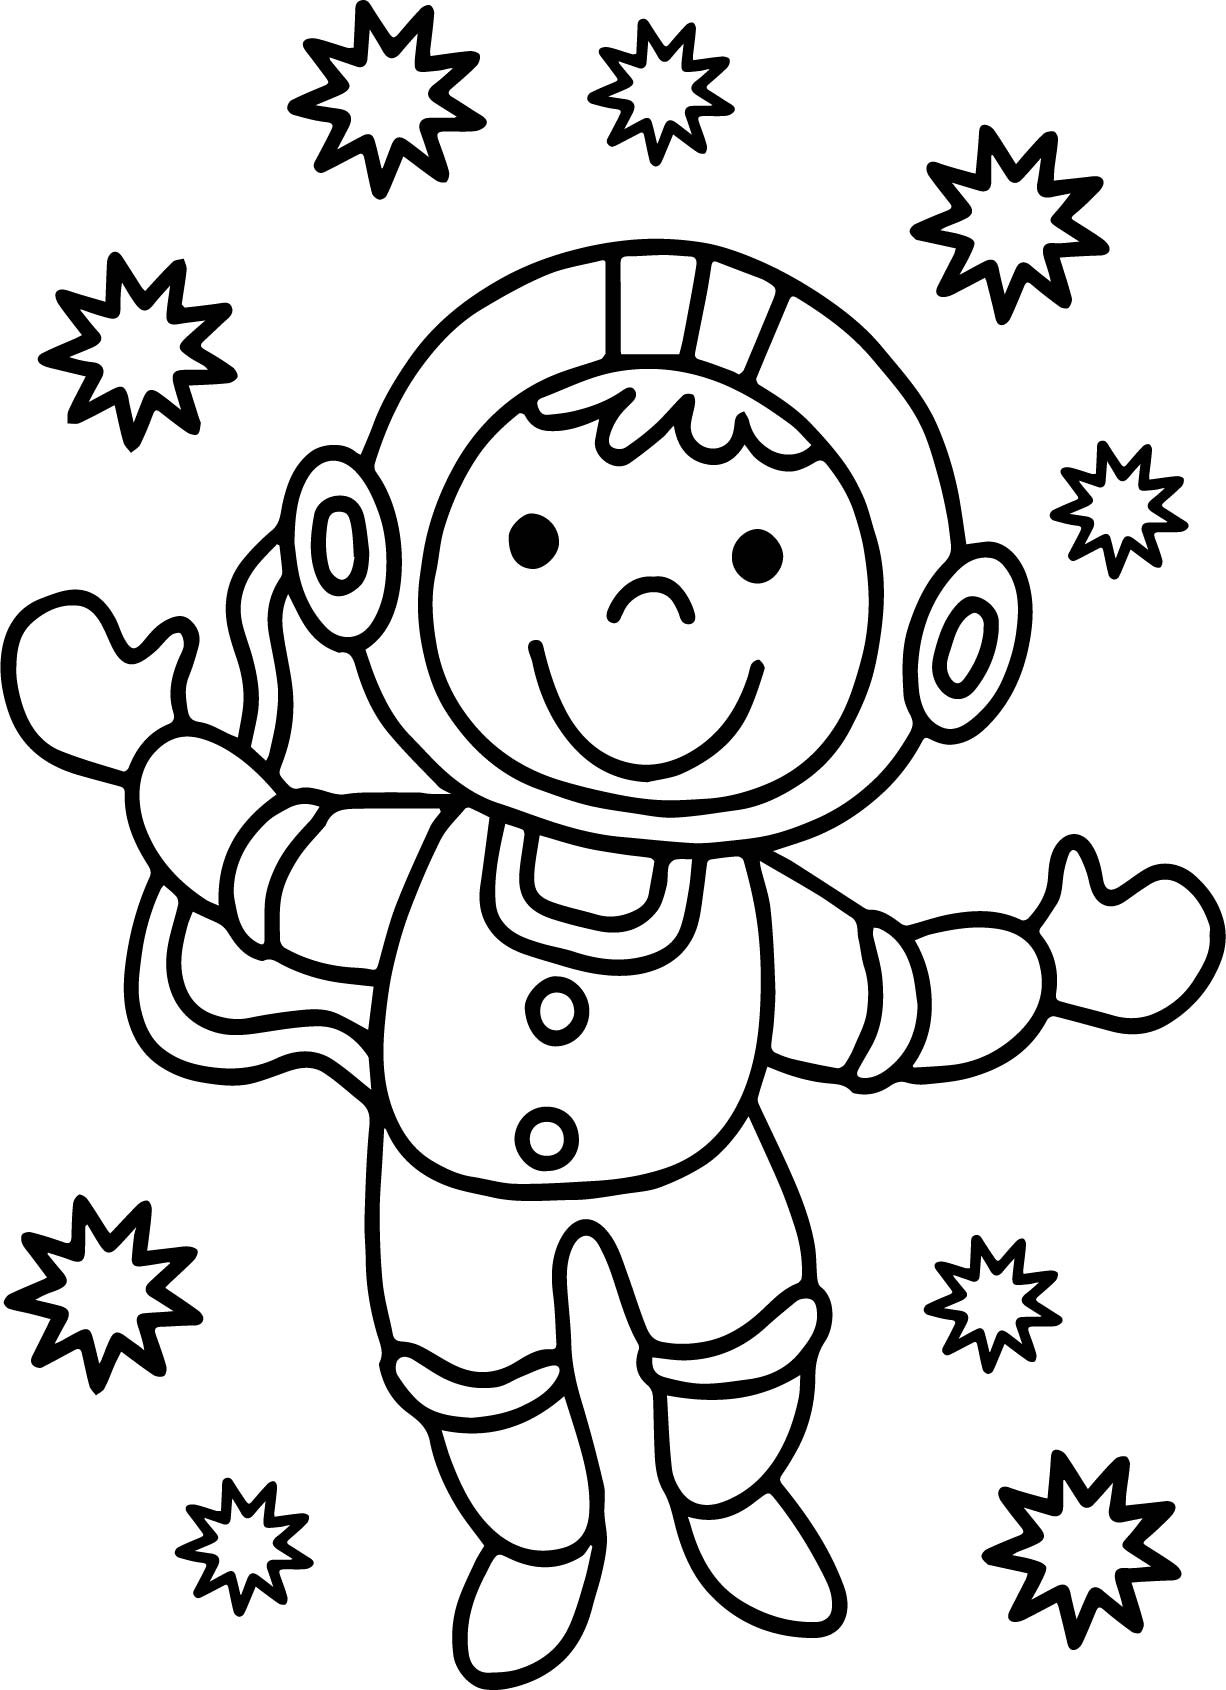 Astronaut Coloring Pages at GetDrawings | Free download